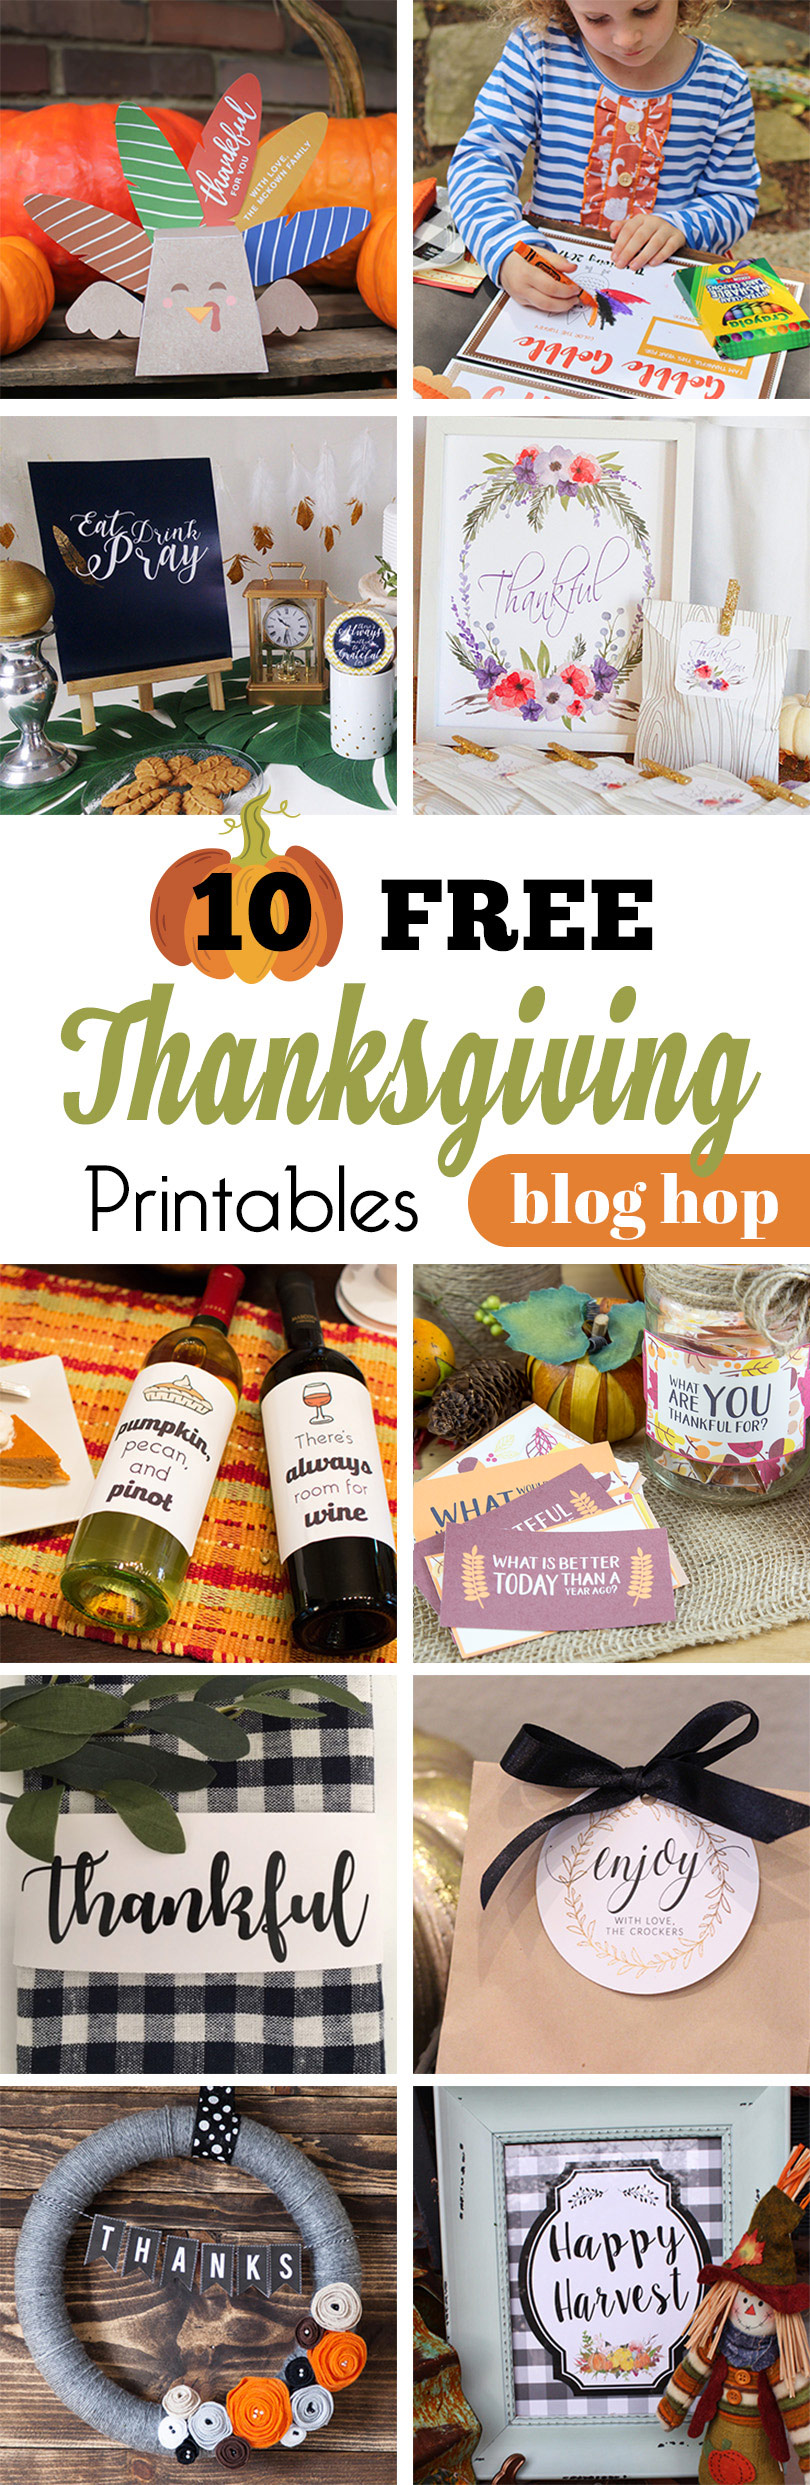 10 FREE Thanksgiving Printables Blog Hop!